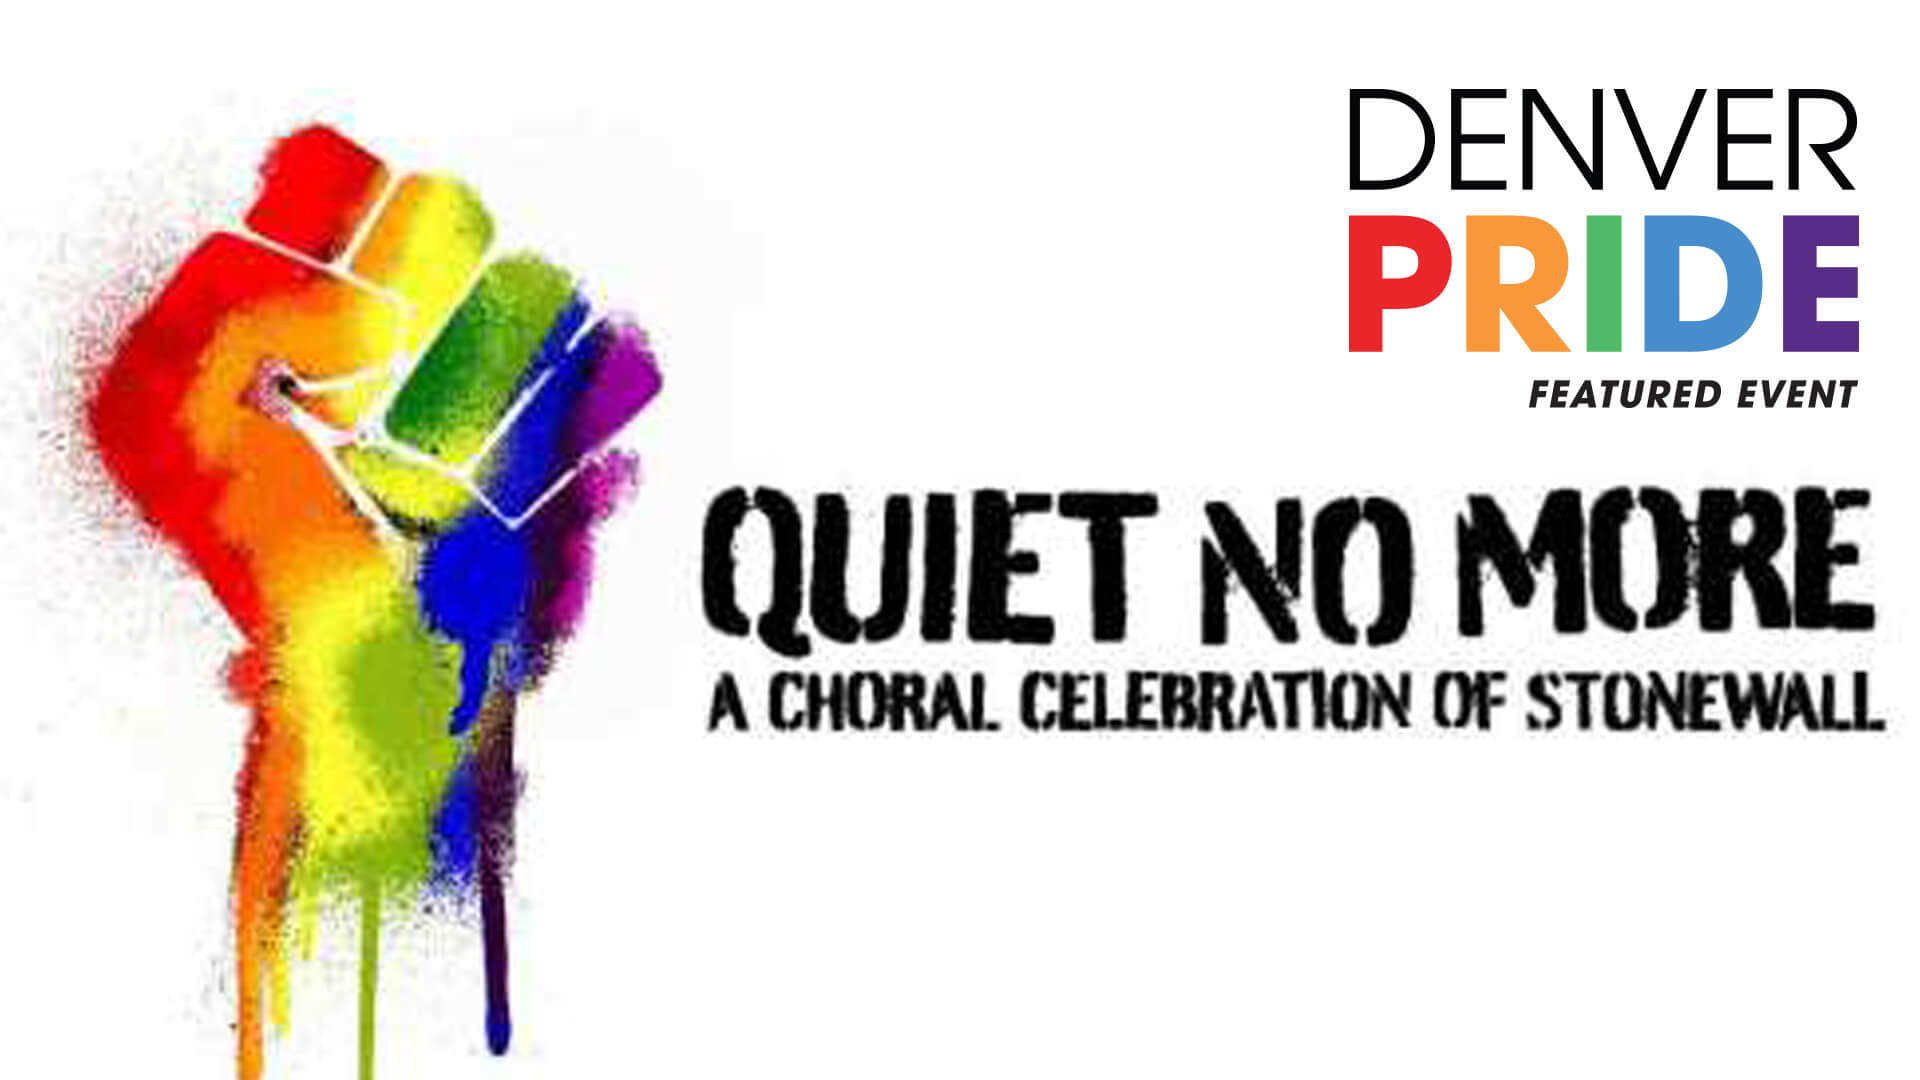 Quiet No More: A Choral Celebration of Stonewall